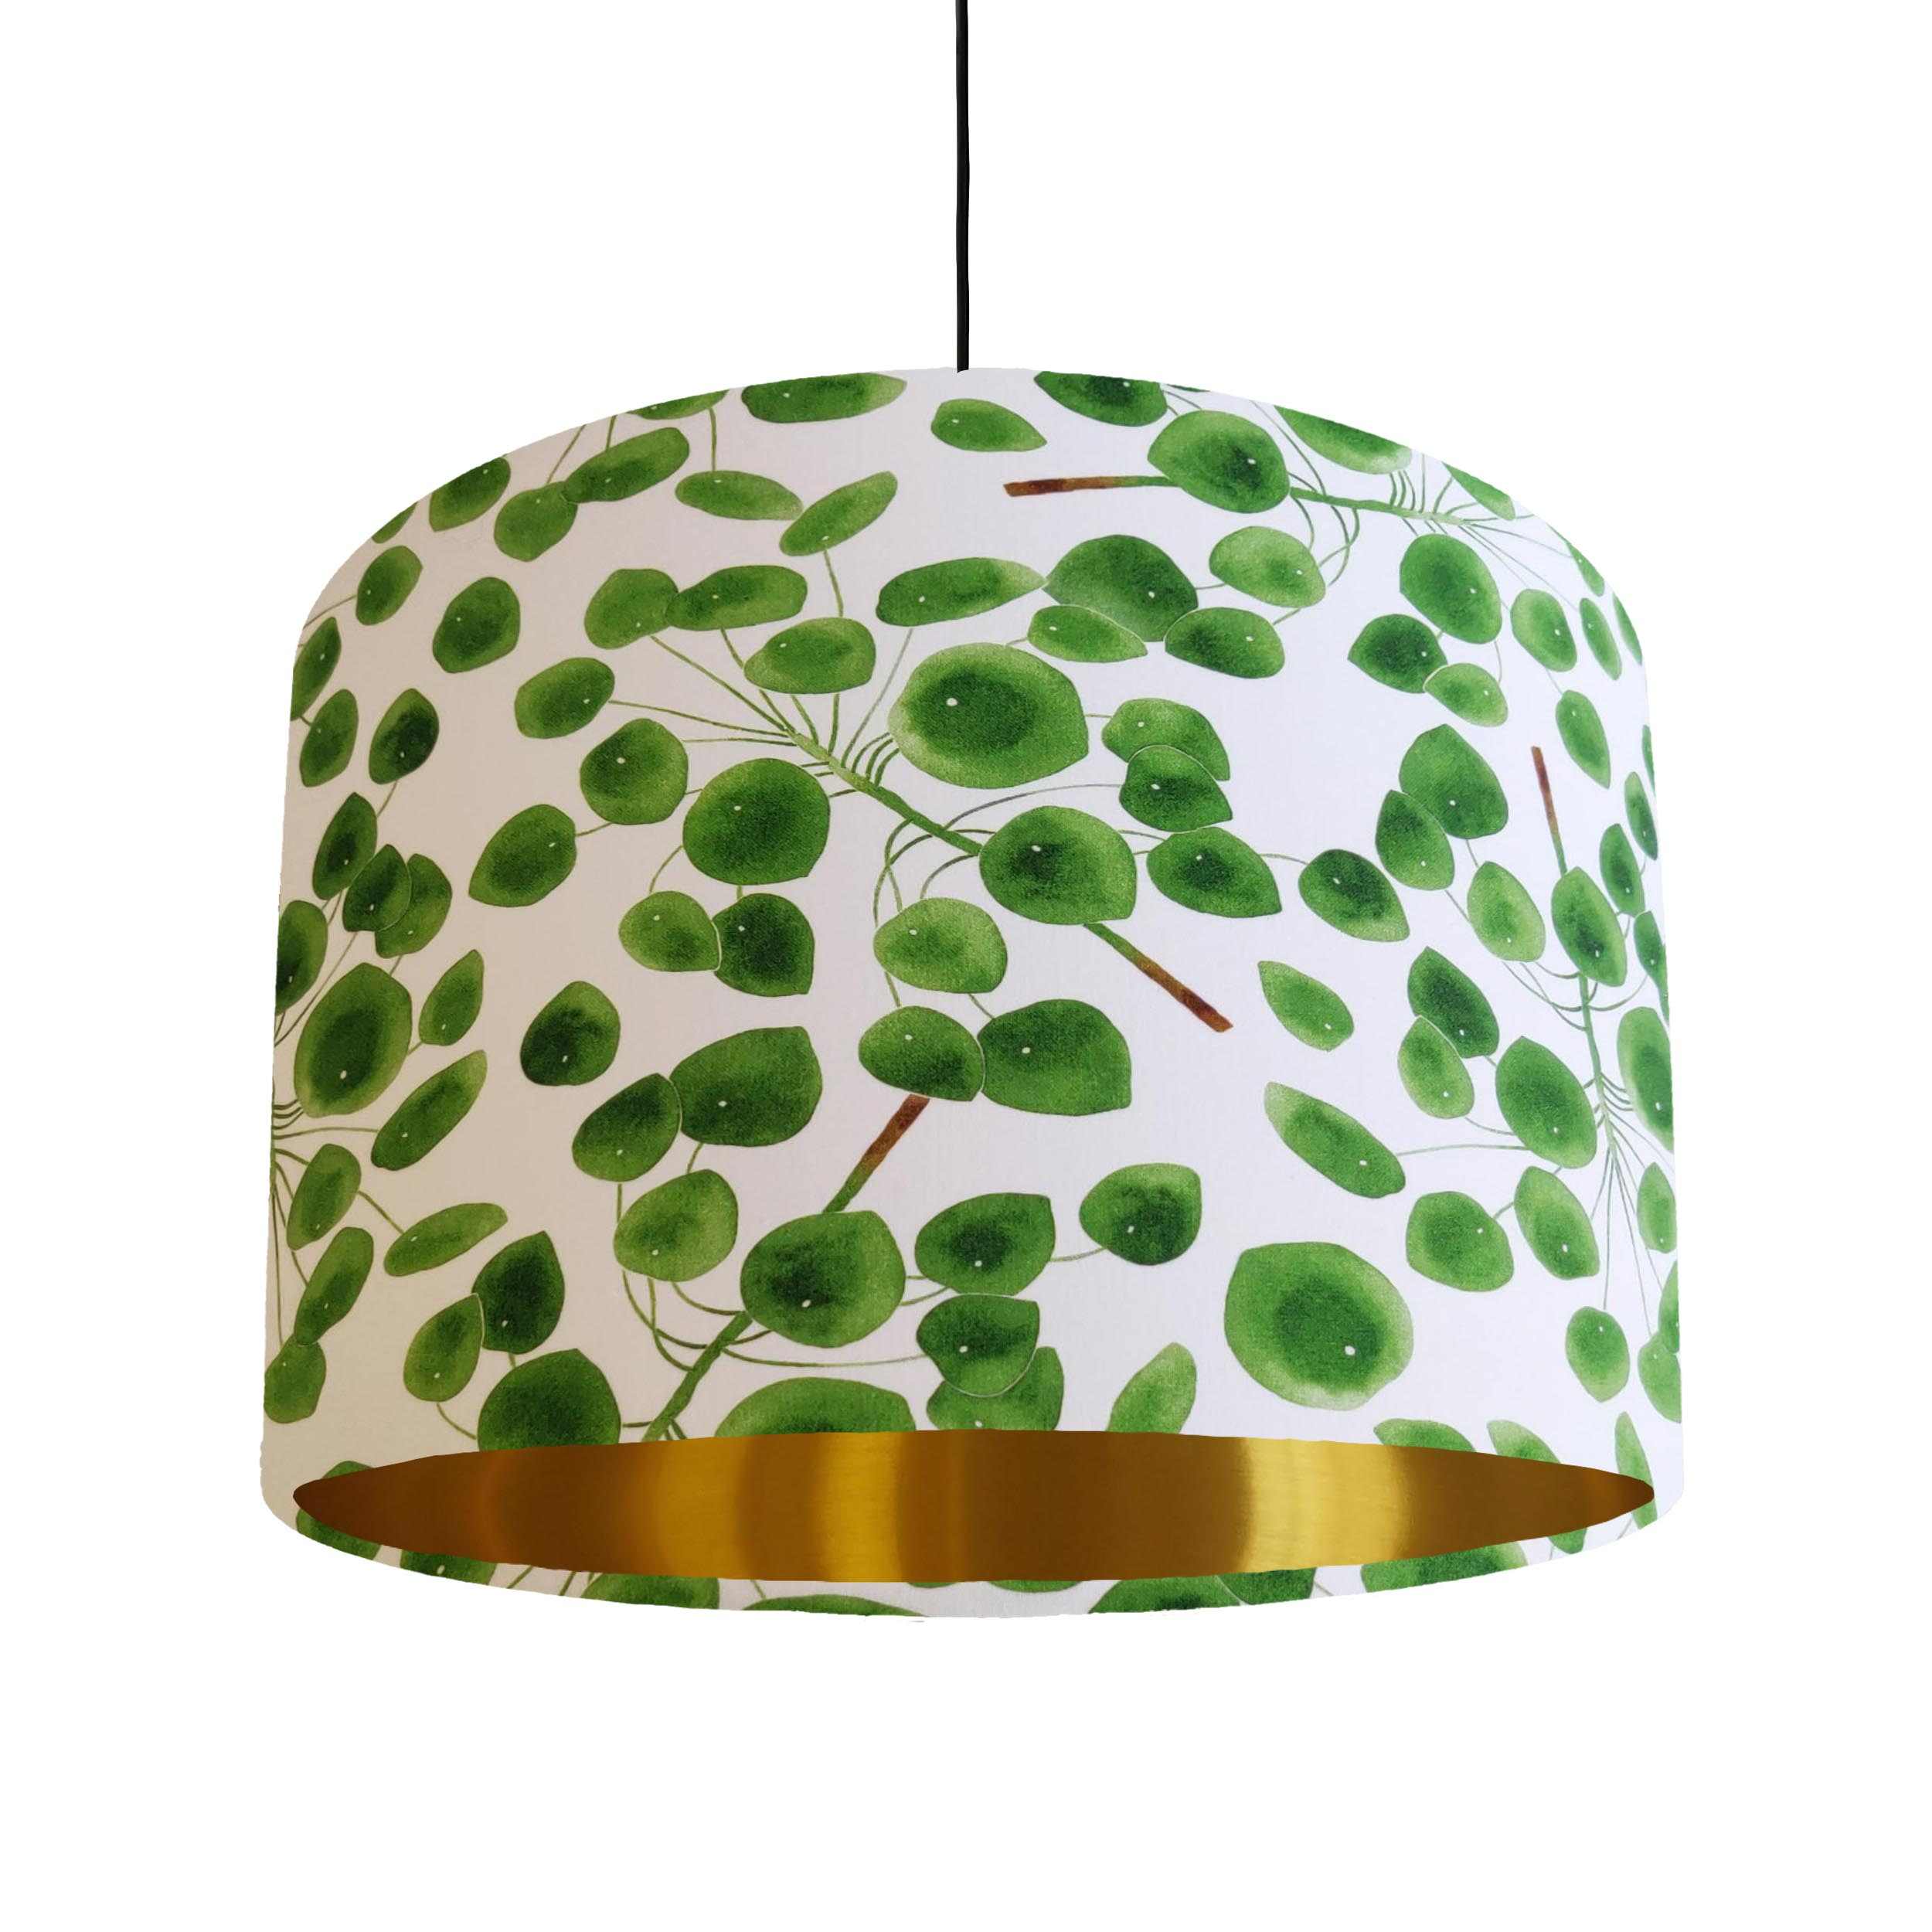 Eucalyptus Leaves Lampshade in Green and White Cotton with Gold Lining